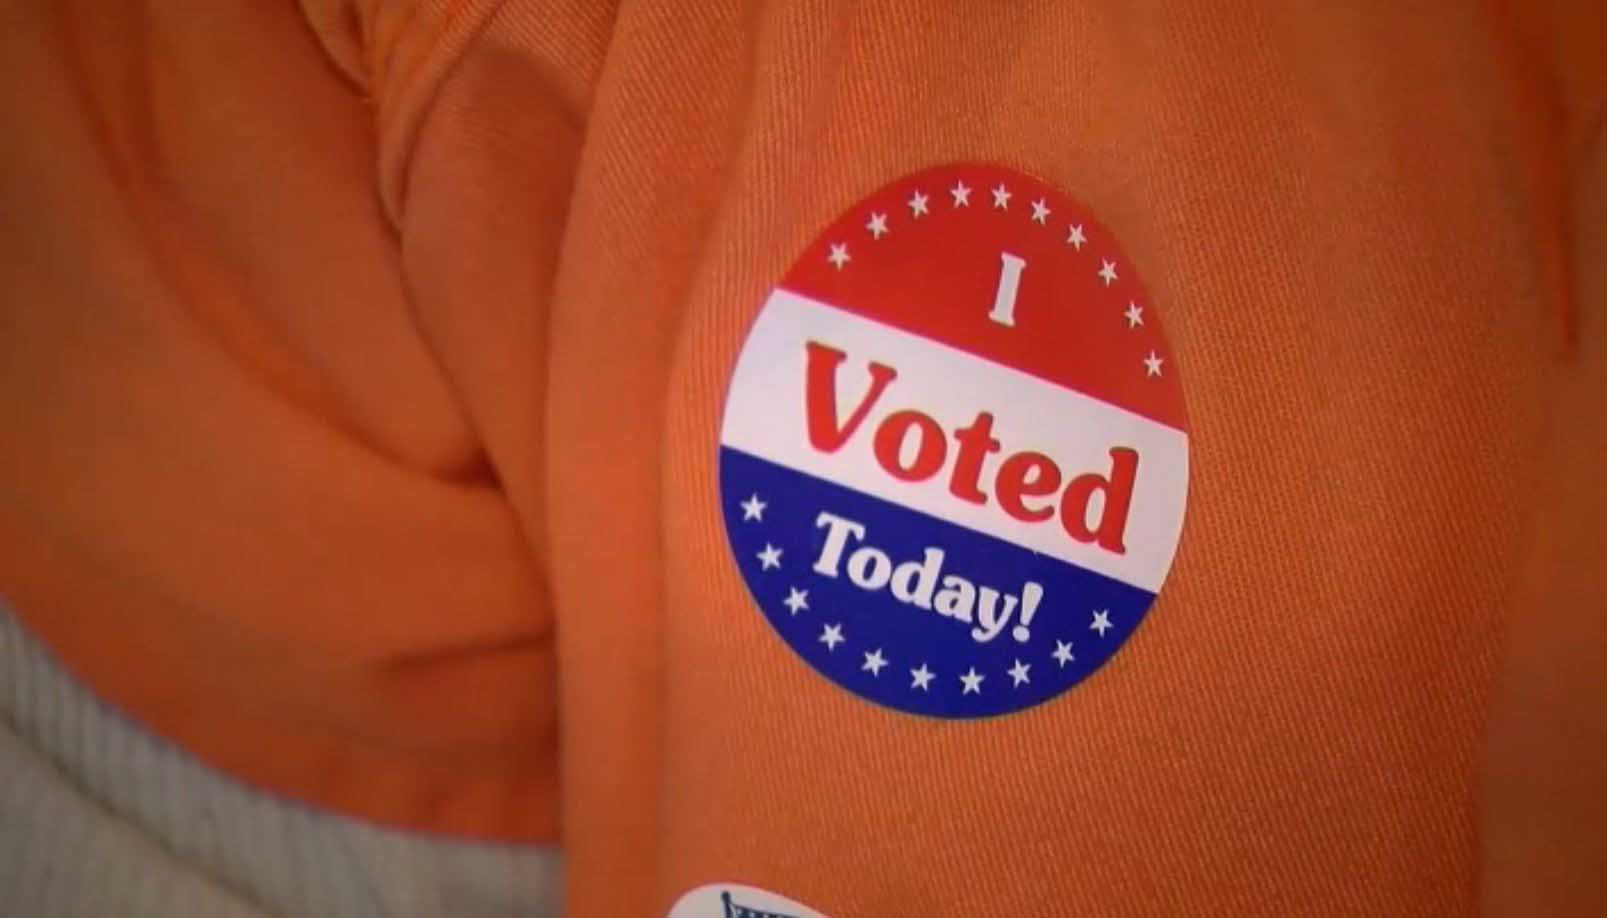 Inmates took part in their civic responsibility by voting from inside a jail in Washington, D.C. (Source: WJLA via CNN)